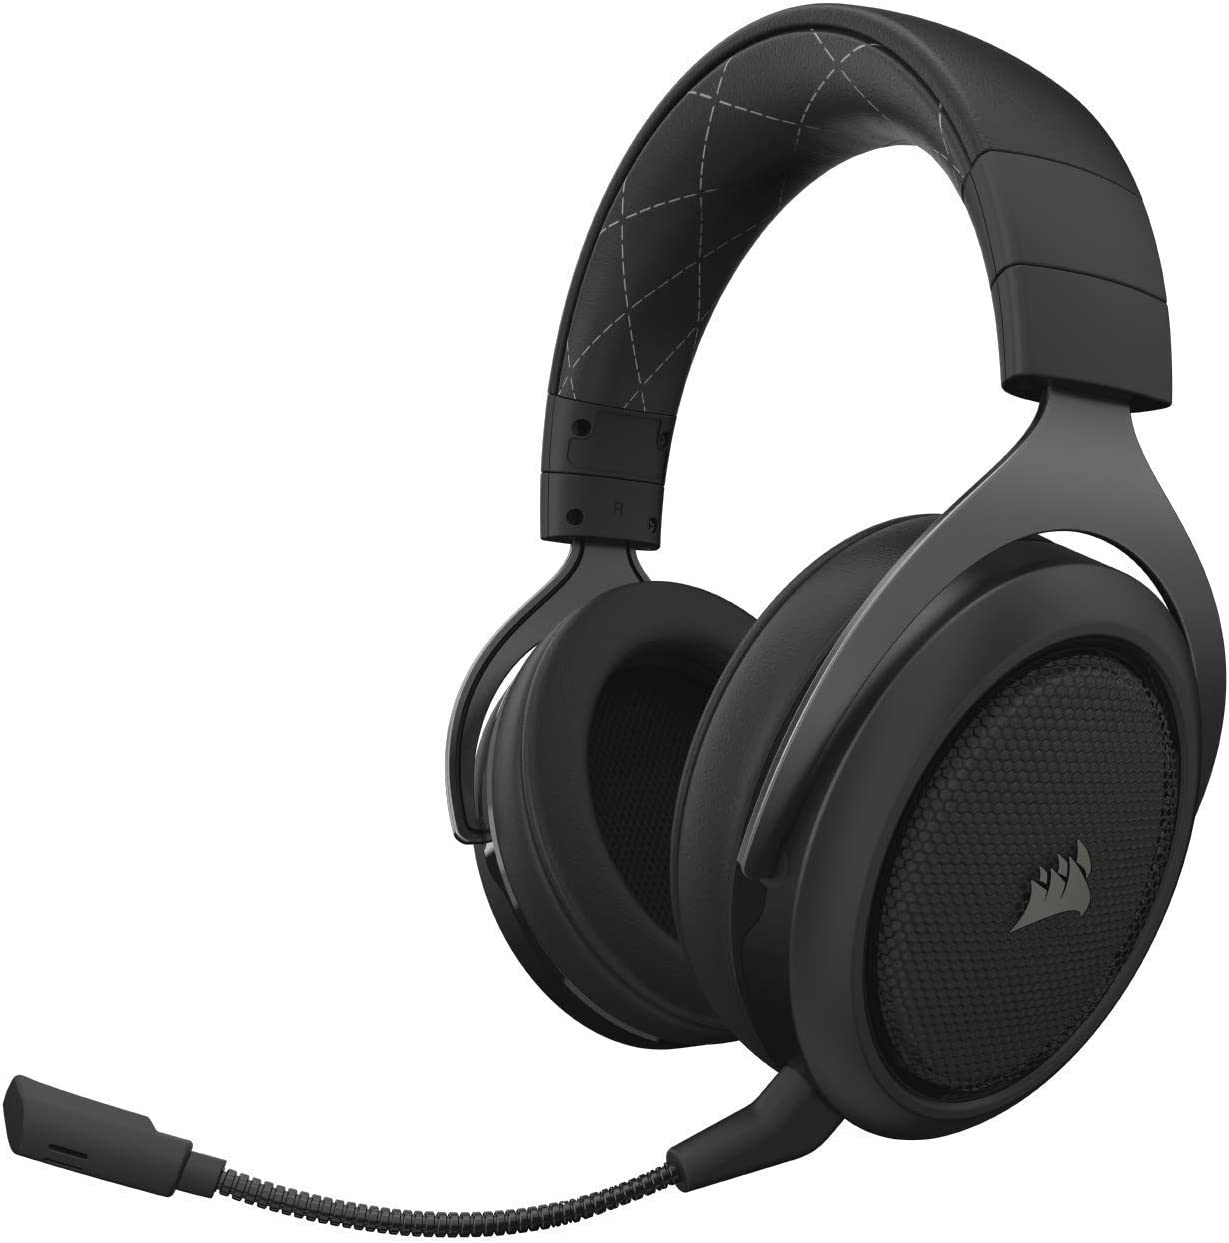 CORSAIR HS70 Wireless Gaming Headset - 7.1 Surround Sound Headphones for PC - Discord Certified - 50mm Drivers – Carbon (Renewed)